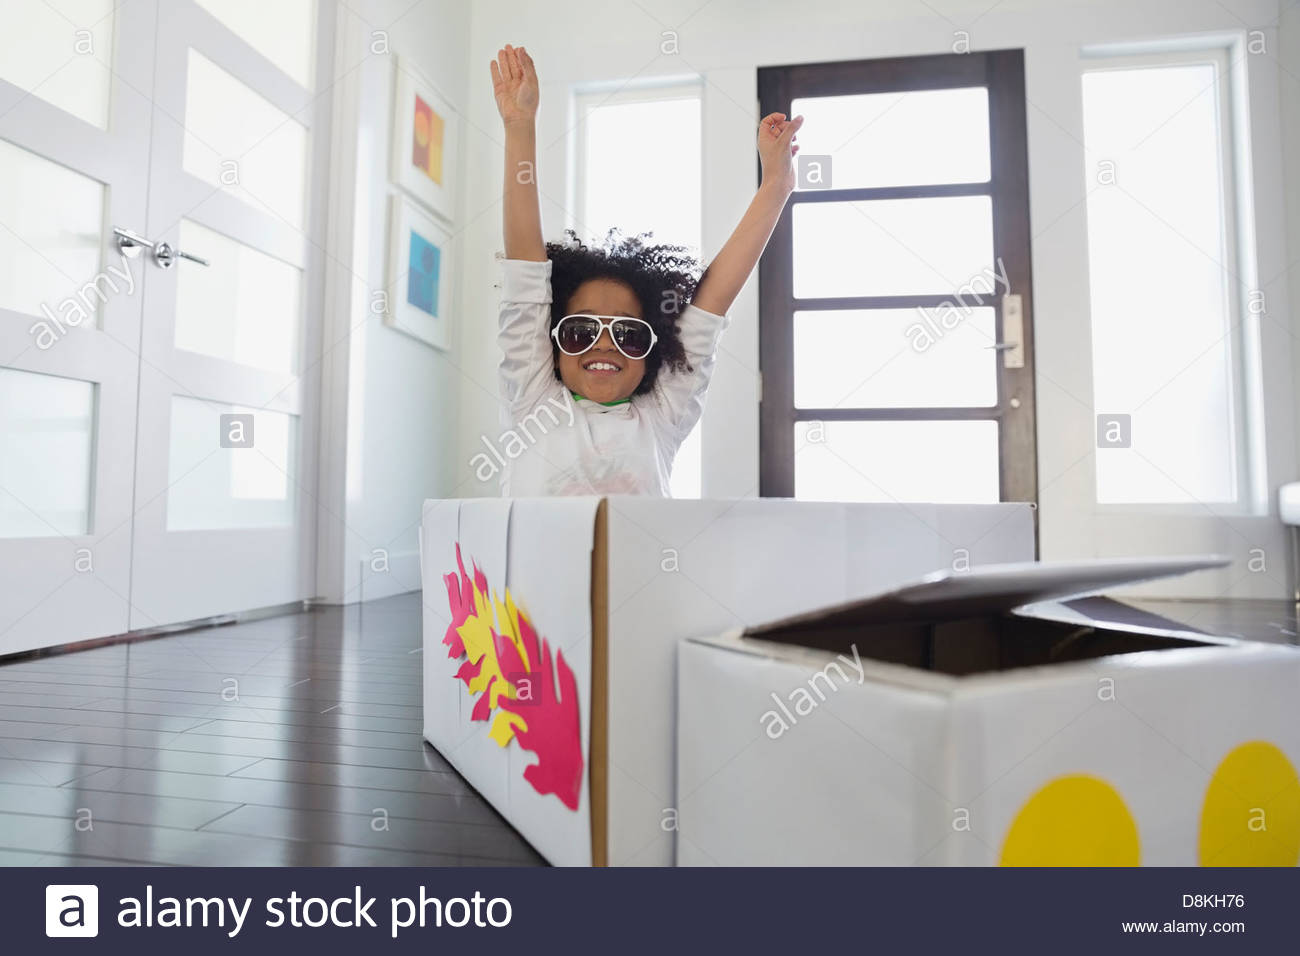 Boy pretending to be race car driver at home - Stock Image